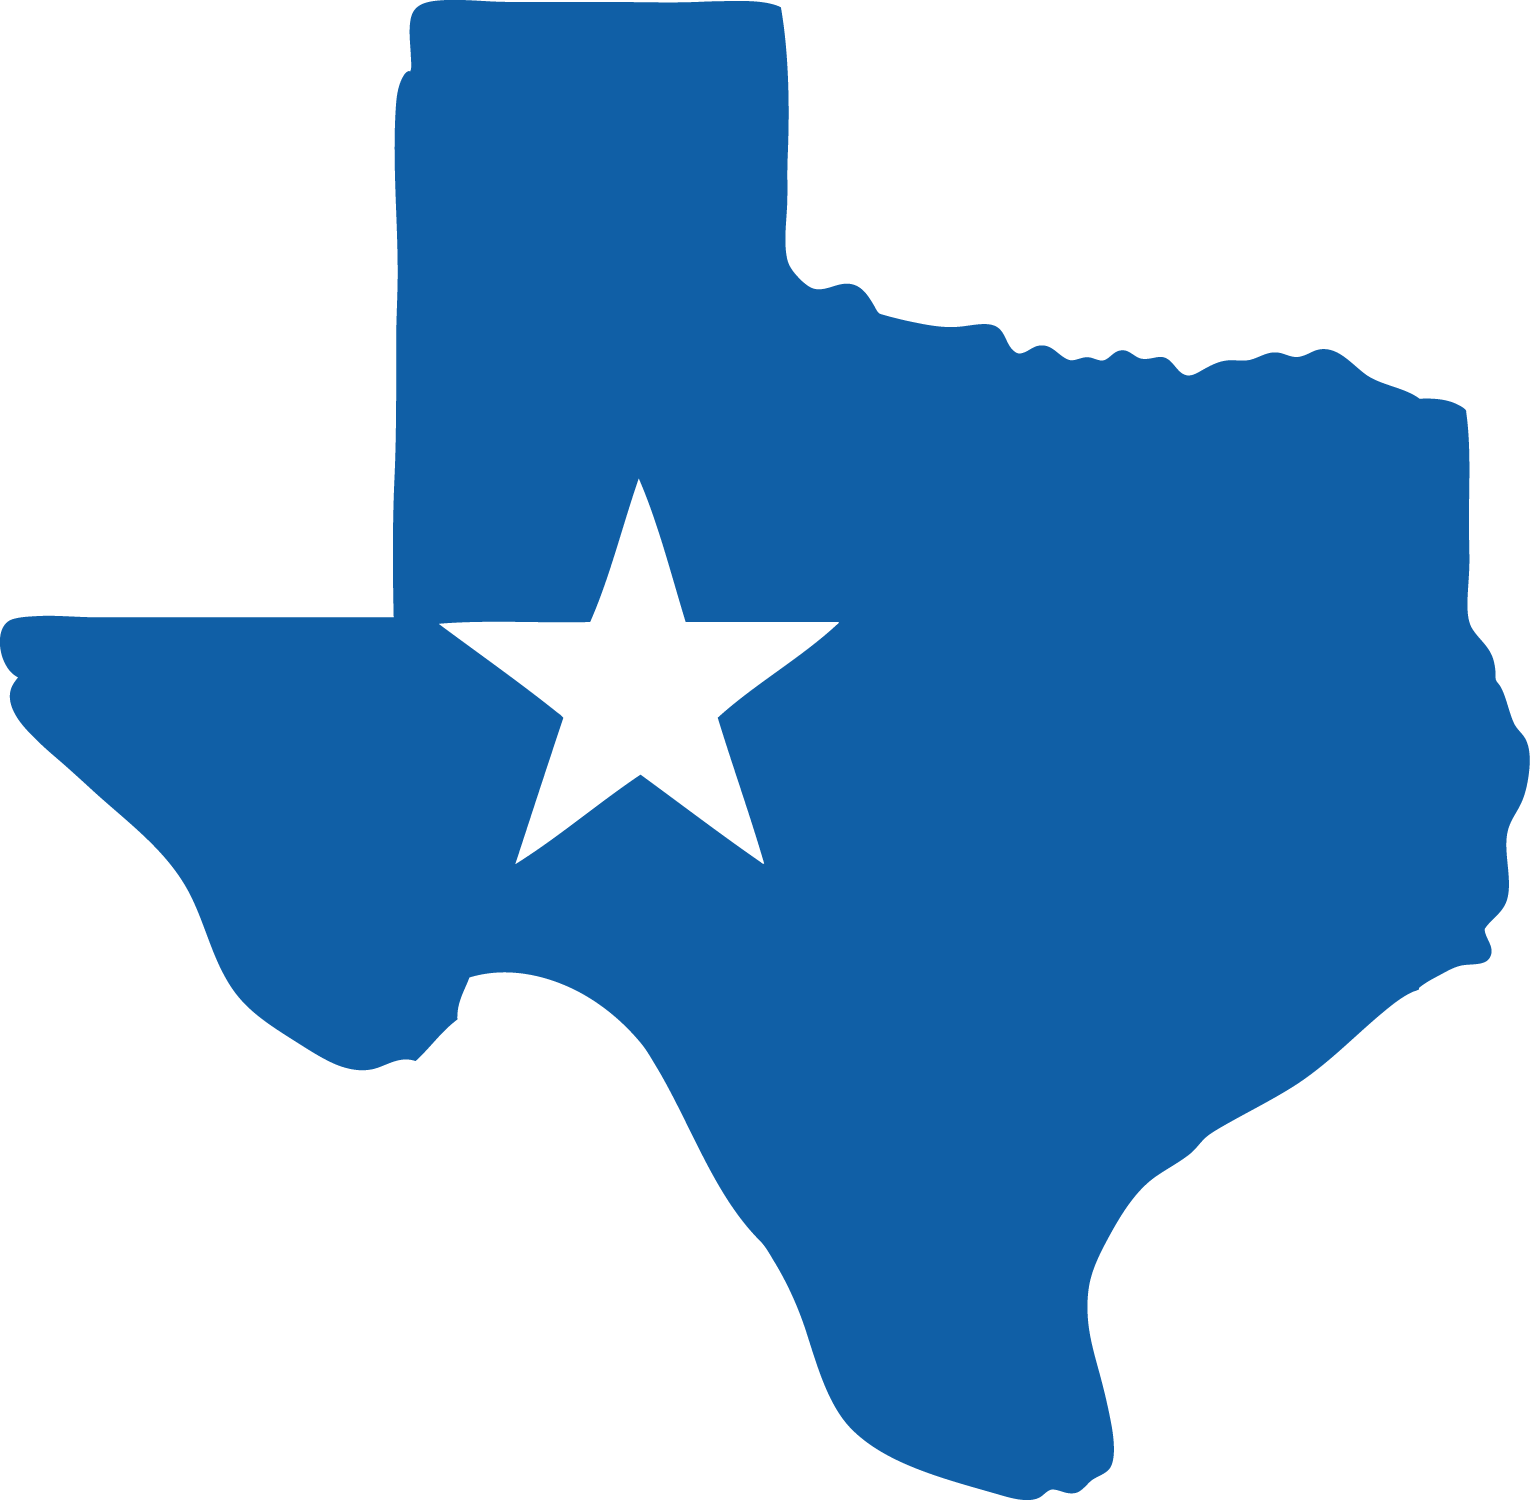 States-Texas : Eyecandy Decals Wholesale, Made in the USA